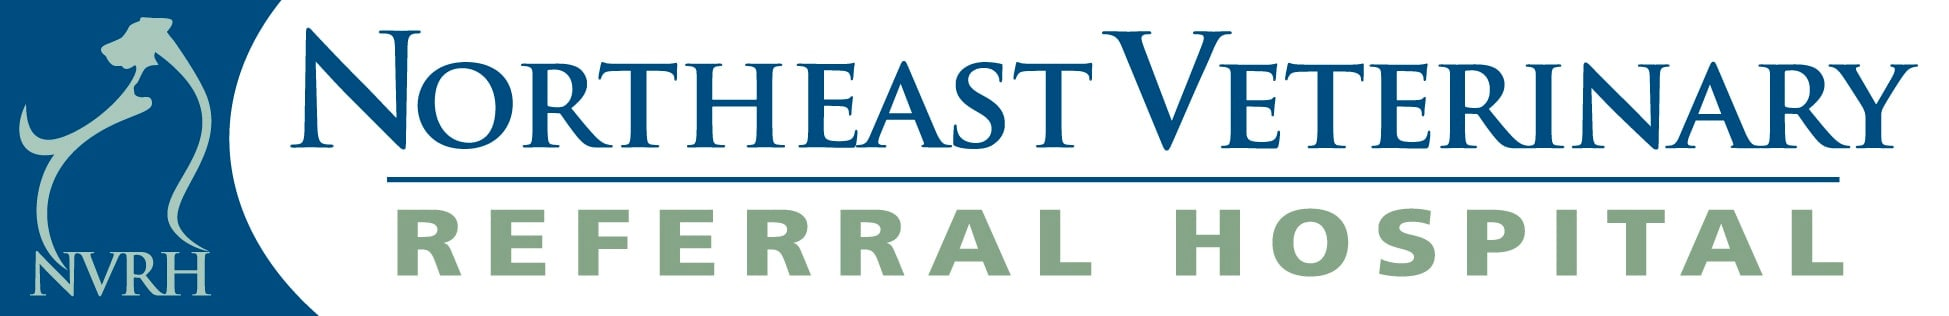 Northeast Veterinary Referral Hospital